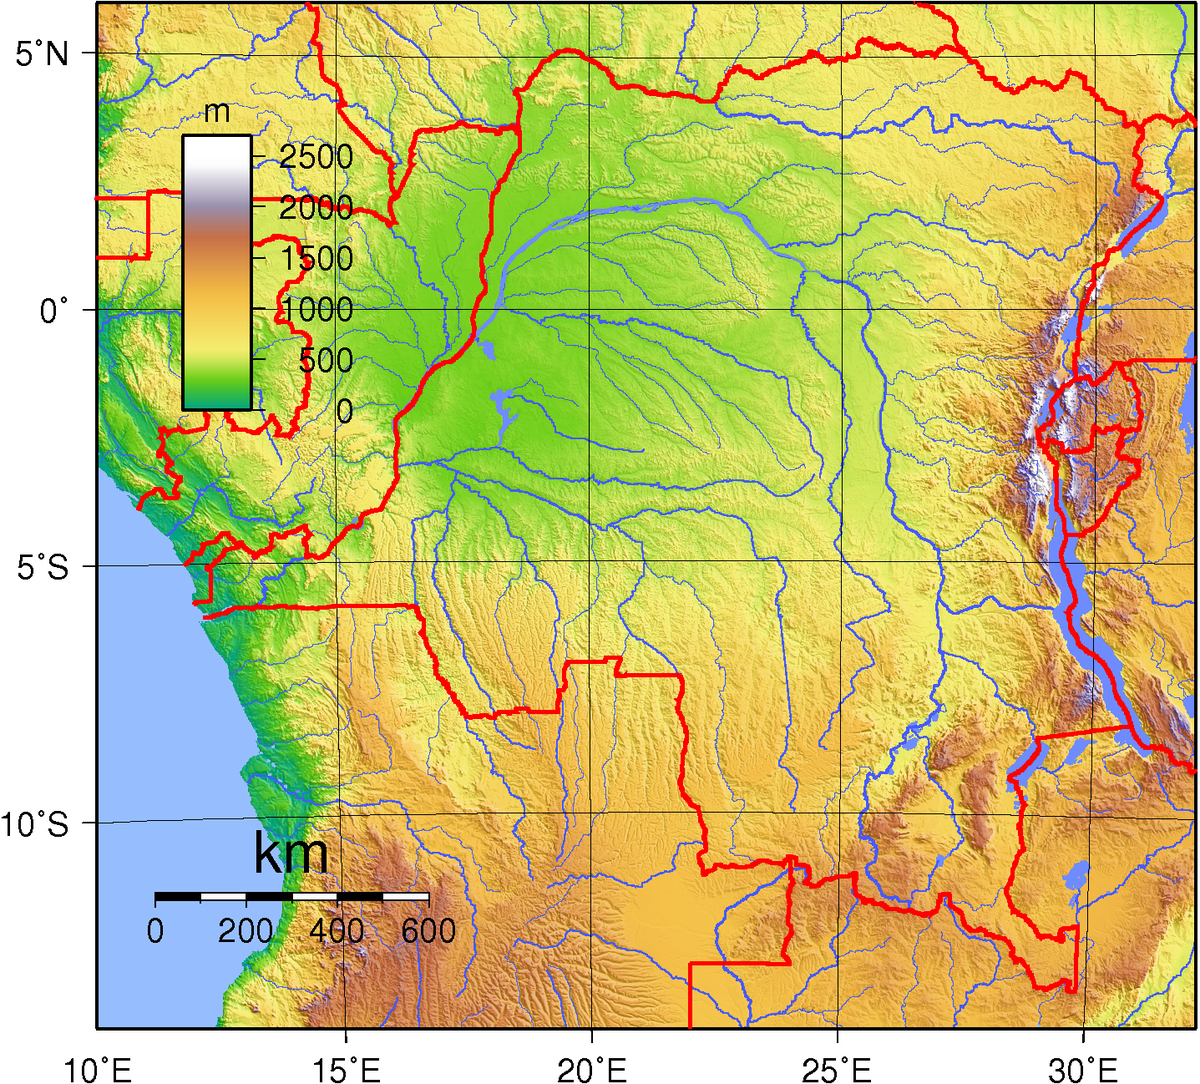 Geology of the Democratic Republic of the Congo - Wikipedia